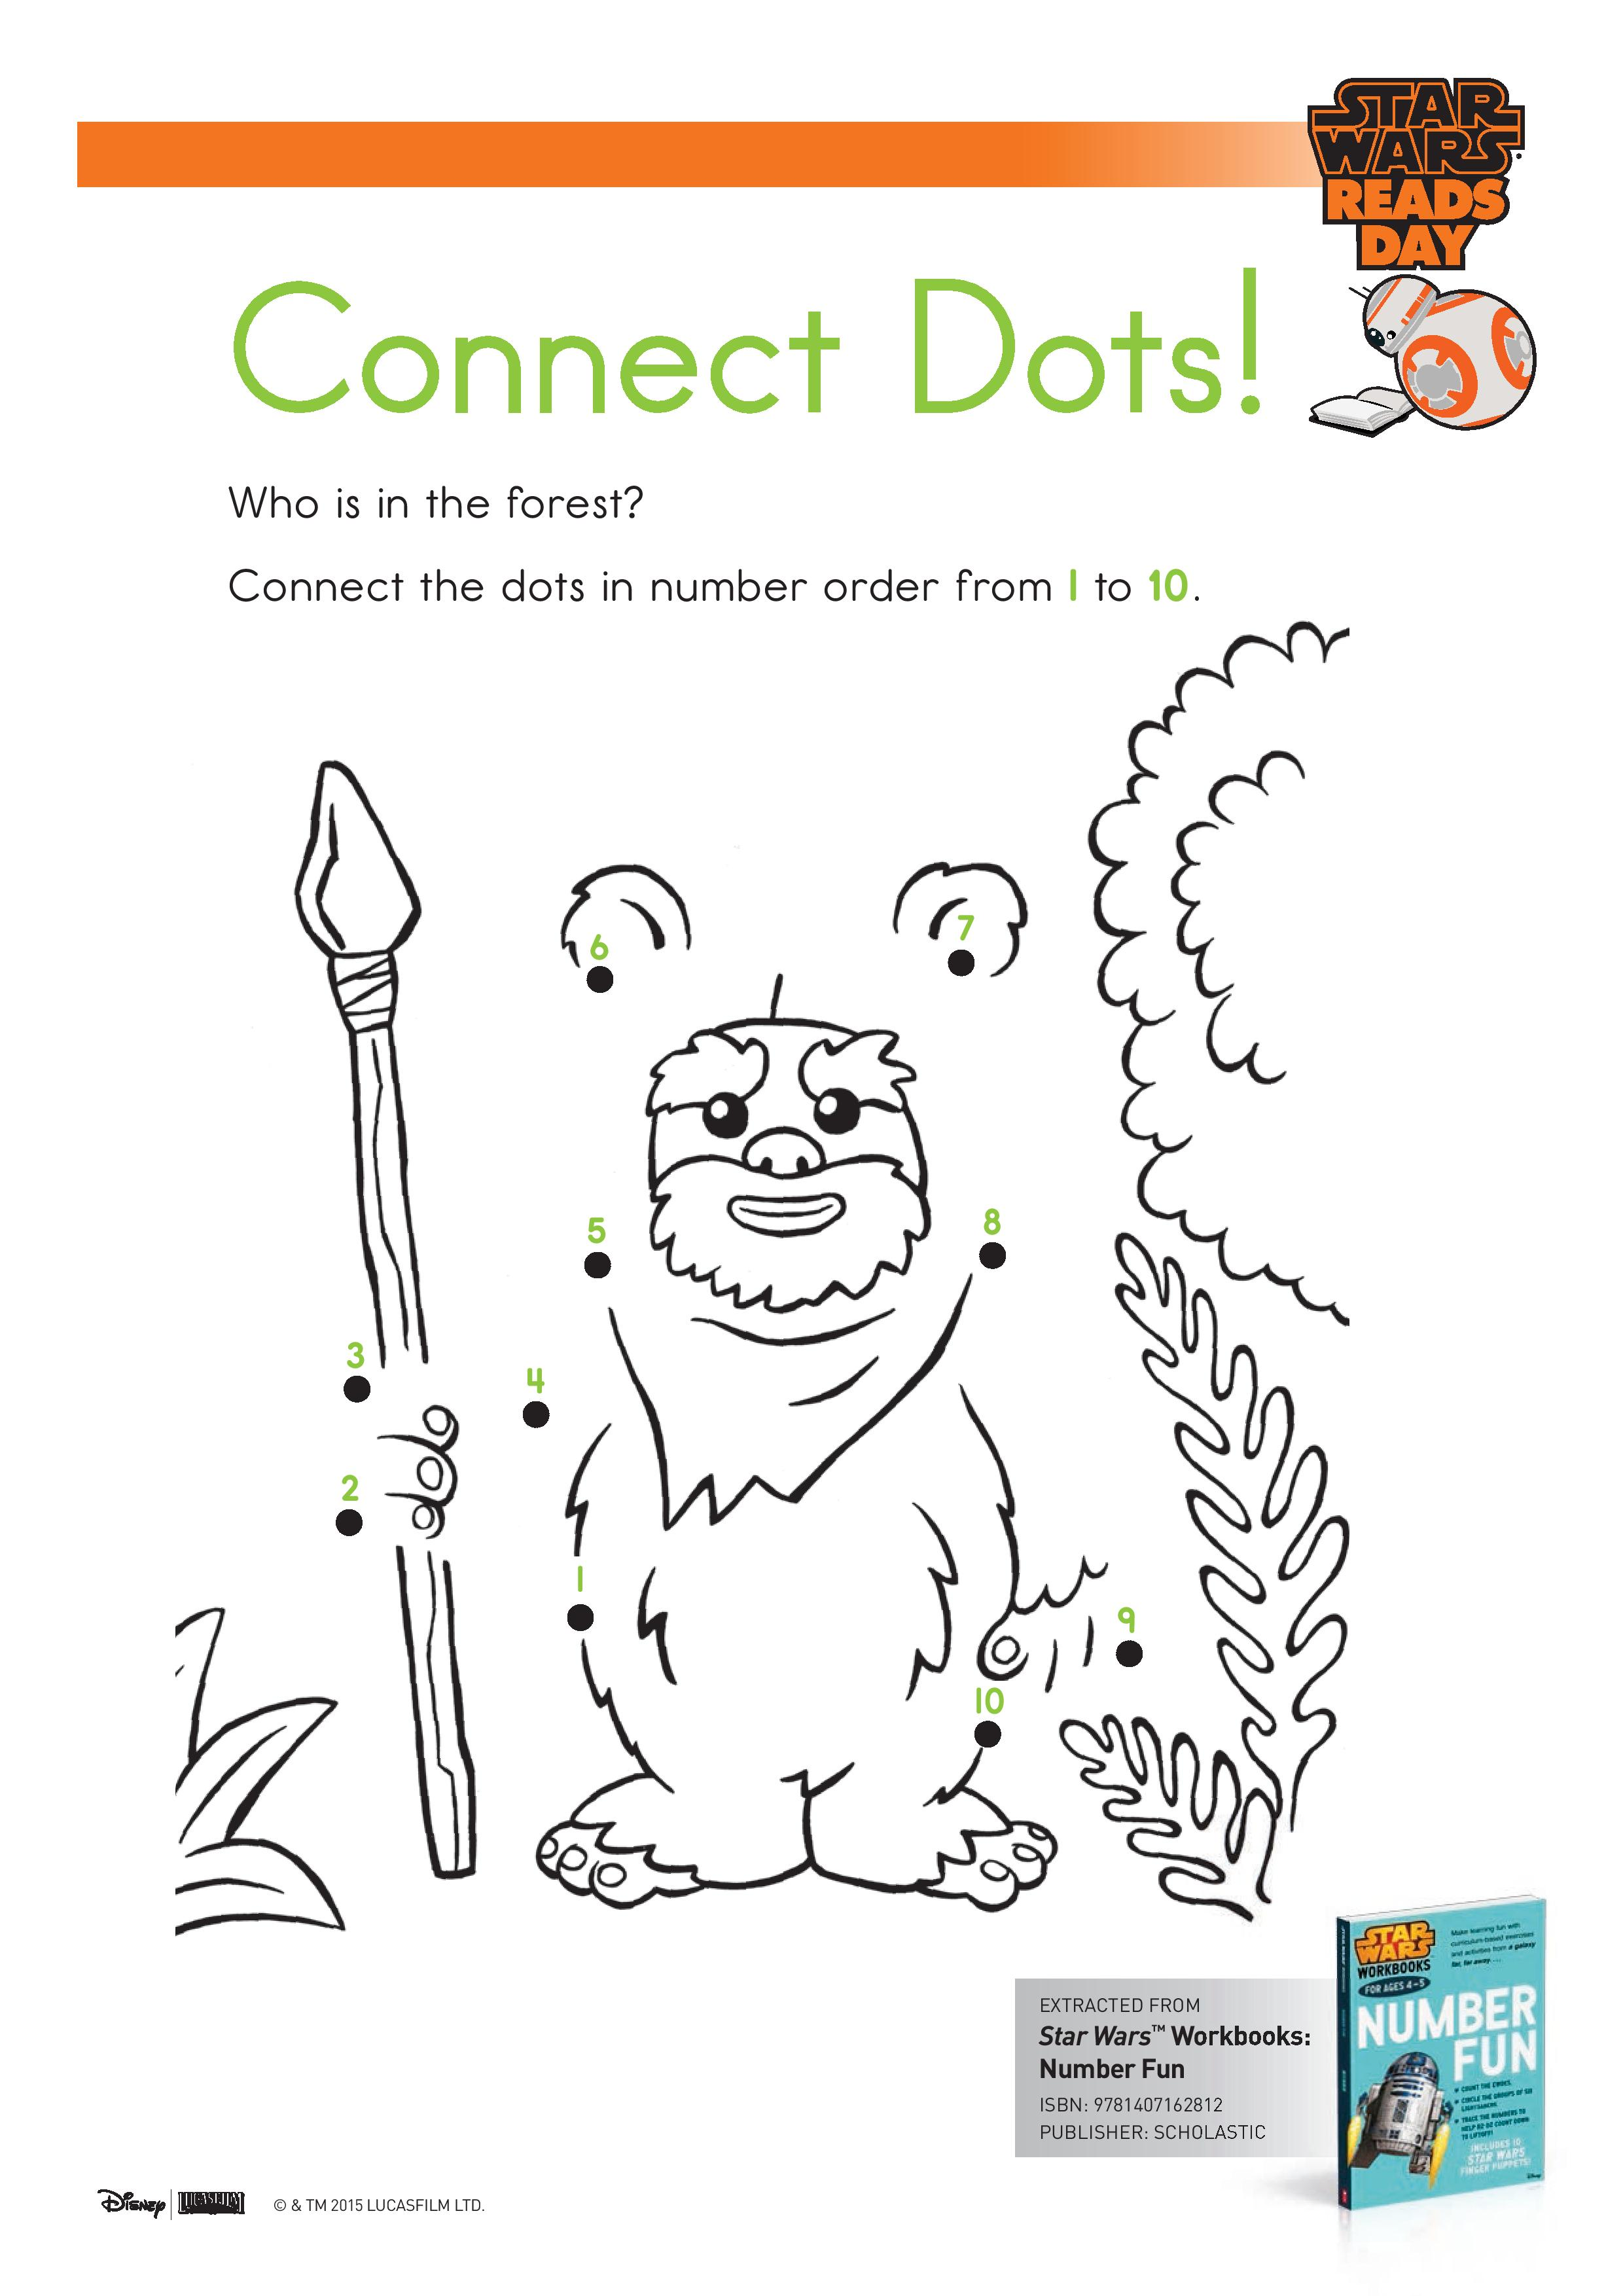 Star Wars Connect the Dots, dot to dot activity page printable